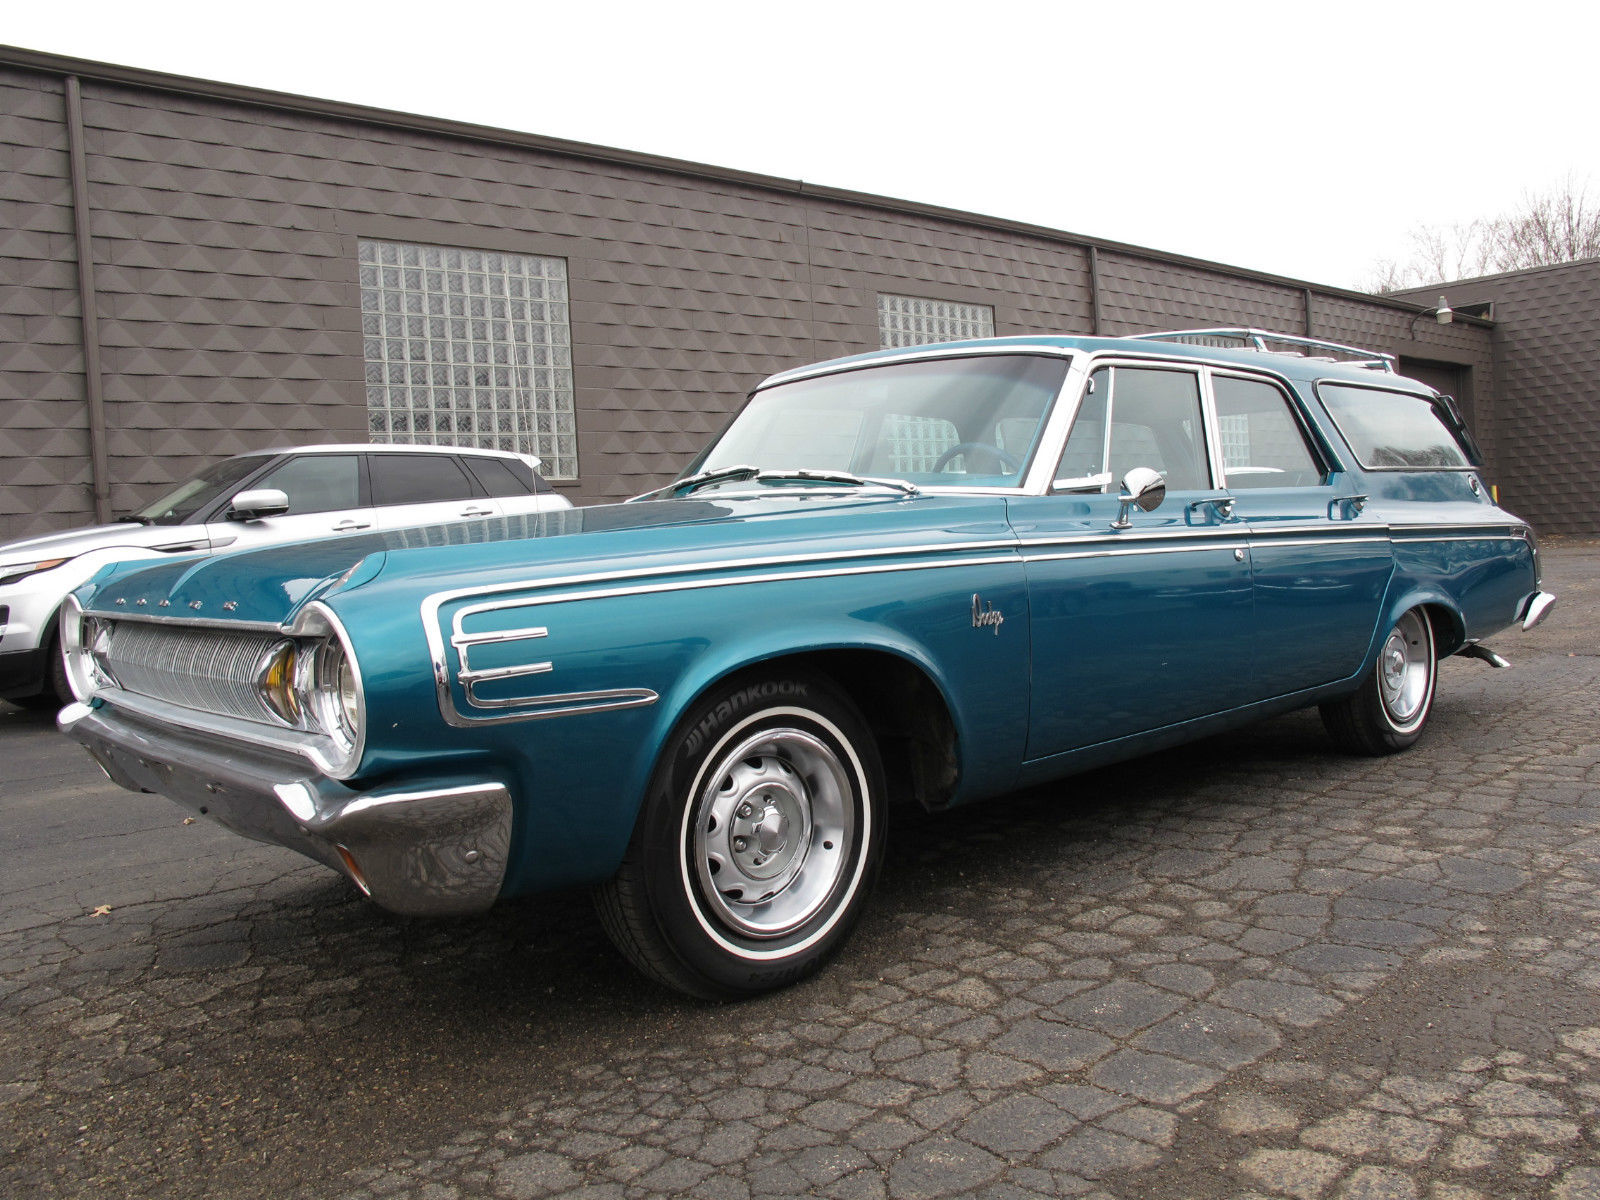 hight resolution of 1964 dodge 440 station wagon anniversary edition over 25 000 invested